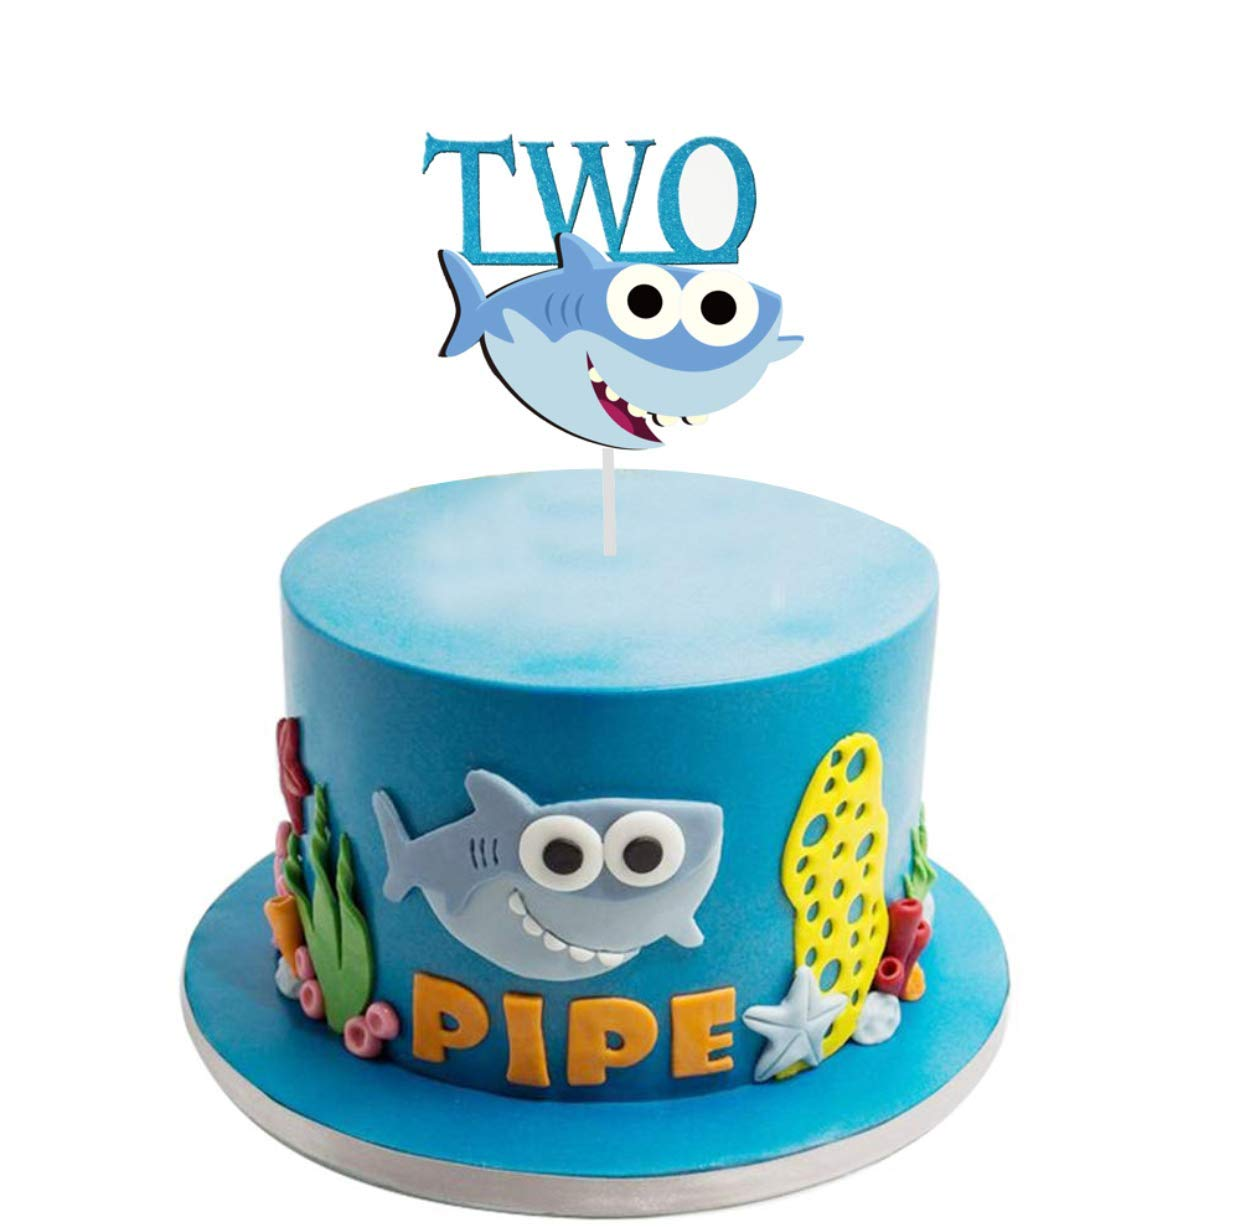 Surprising Amazon Com Baby Shark One Birthday Cake Topper For 1St First Funny Birthday Cards Online Sheoxdamsfinfo